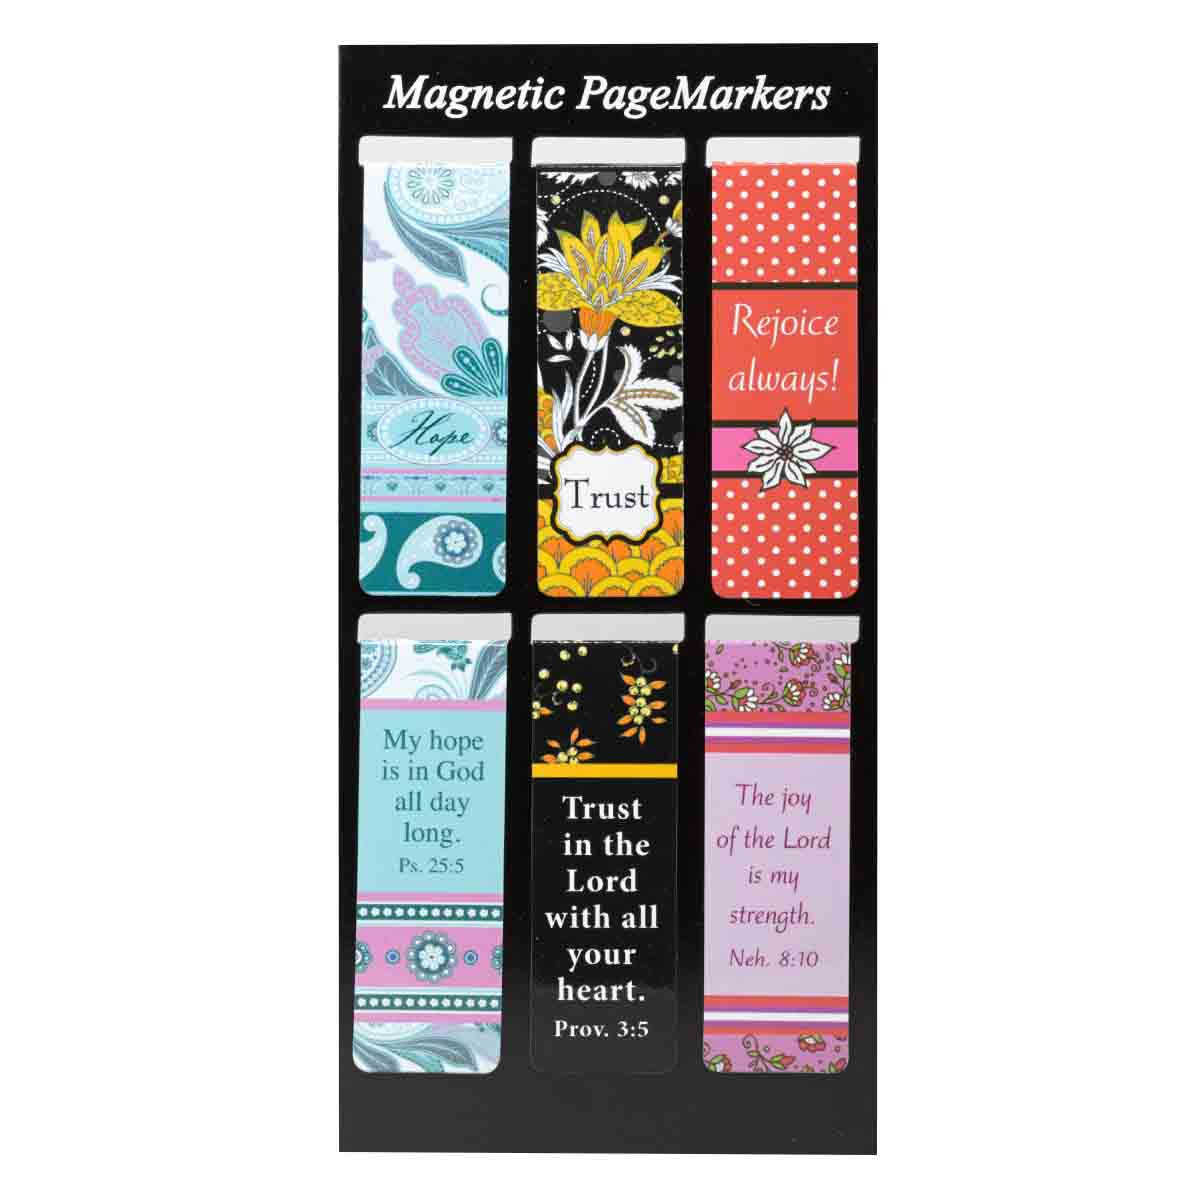 Rejoice Always (Magnetic Pagemarkers)